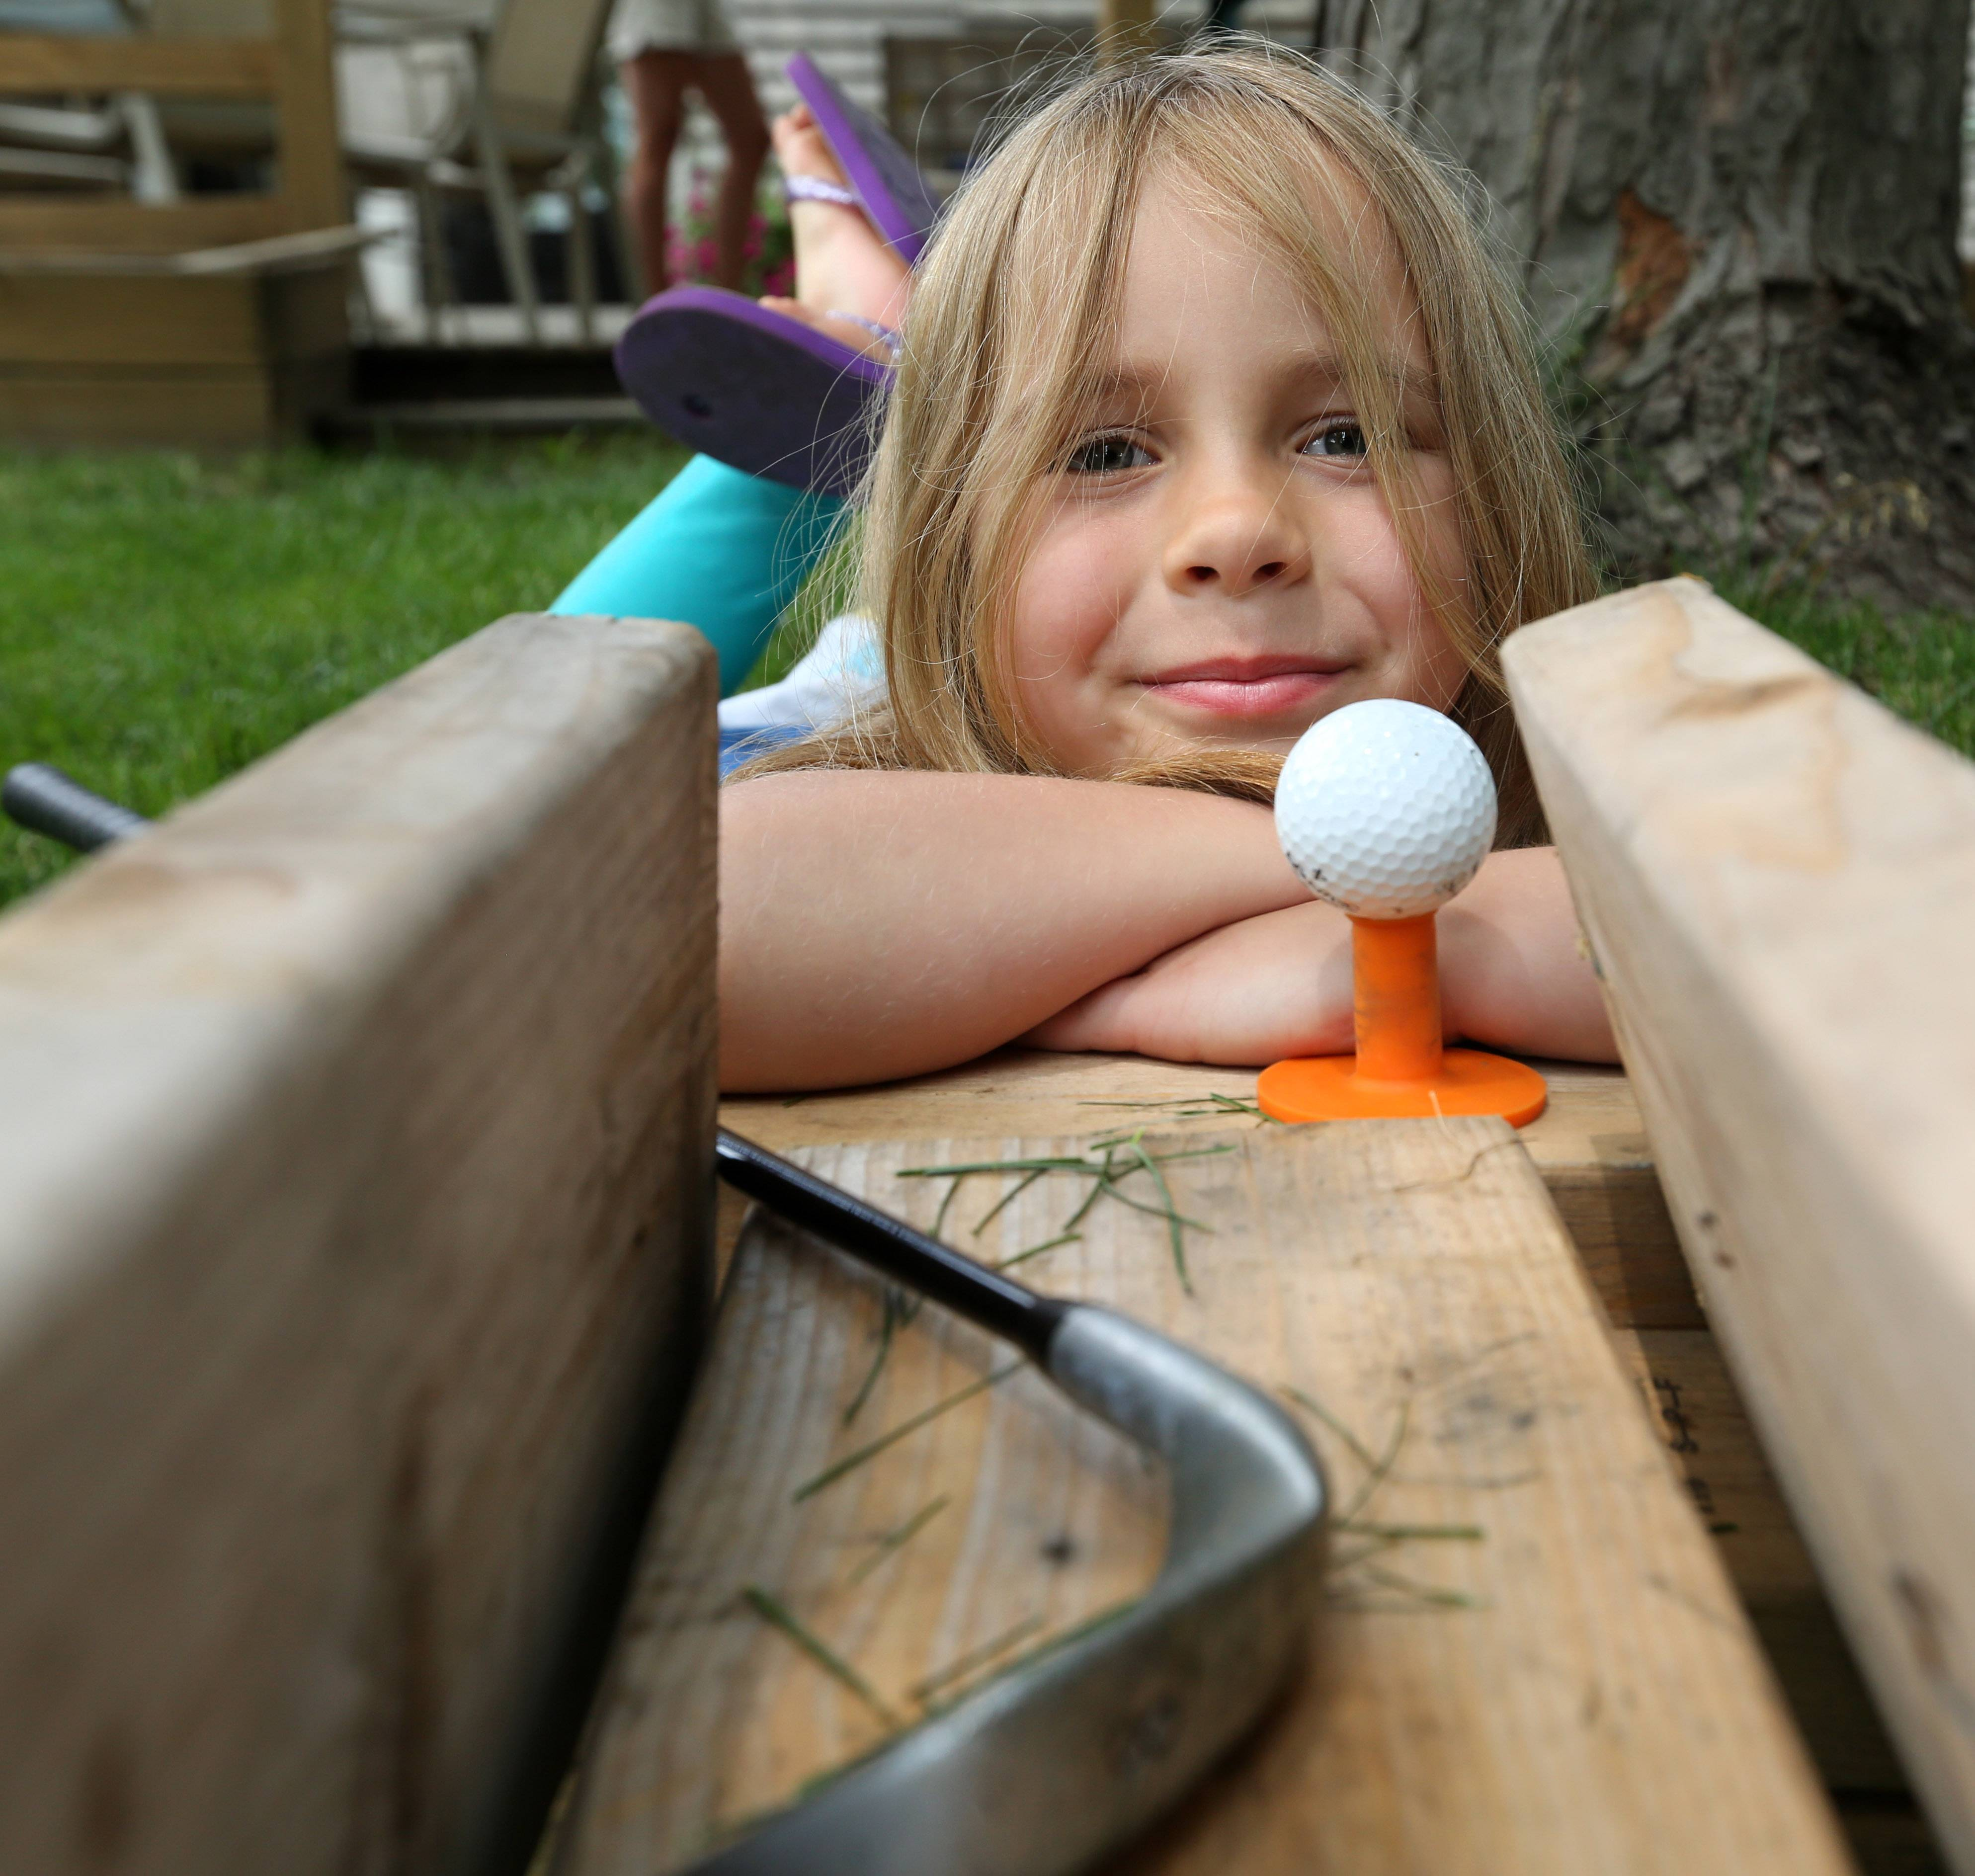 Lily Anderson, 6, helped create a homemade mini golf course made out of boards, a basketball hoop, tubes, buckets, and other items in her friend's backyard in Schaumburg.